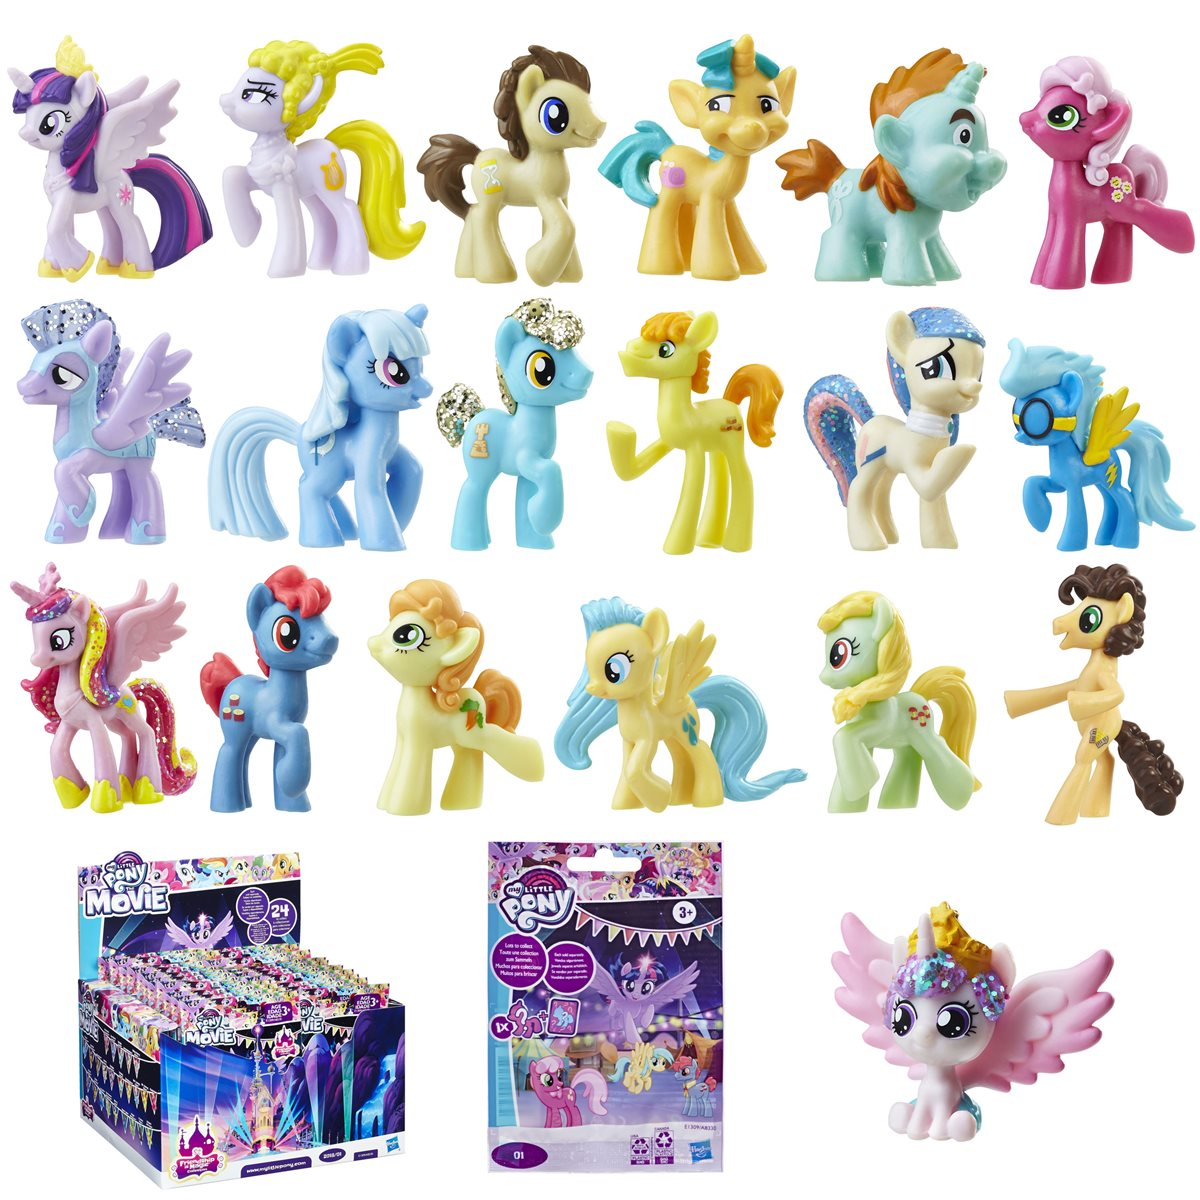 My Little Pony Movie Blind Bags Cheaper Than Retail Price Buy Clothing Accessories And Lifestyle Products For Women Men